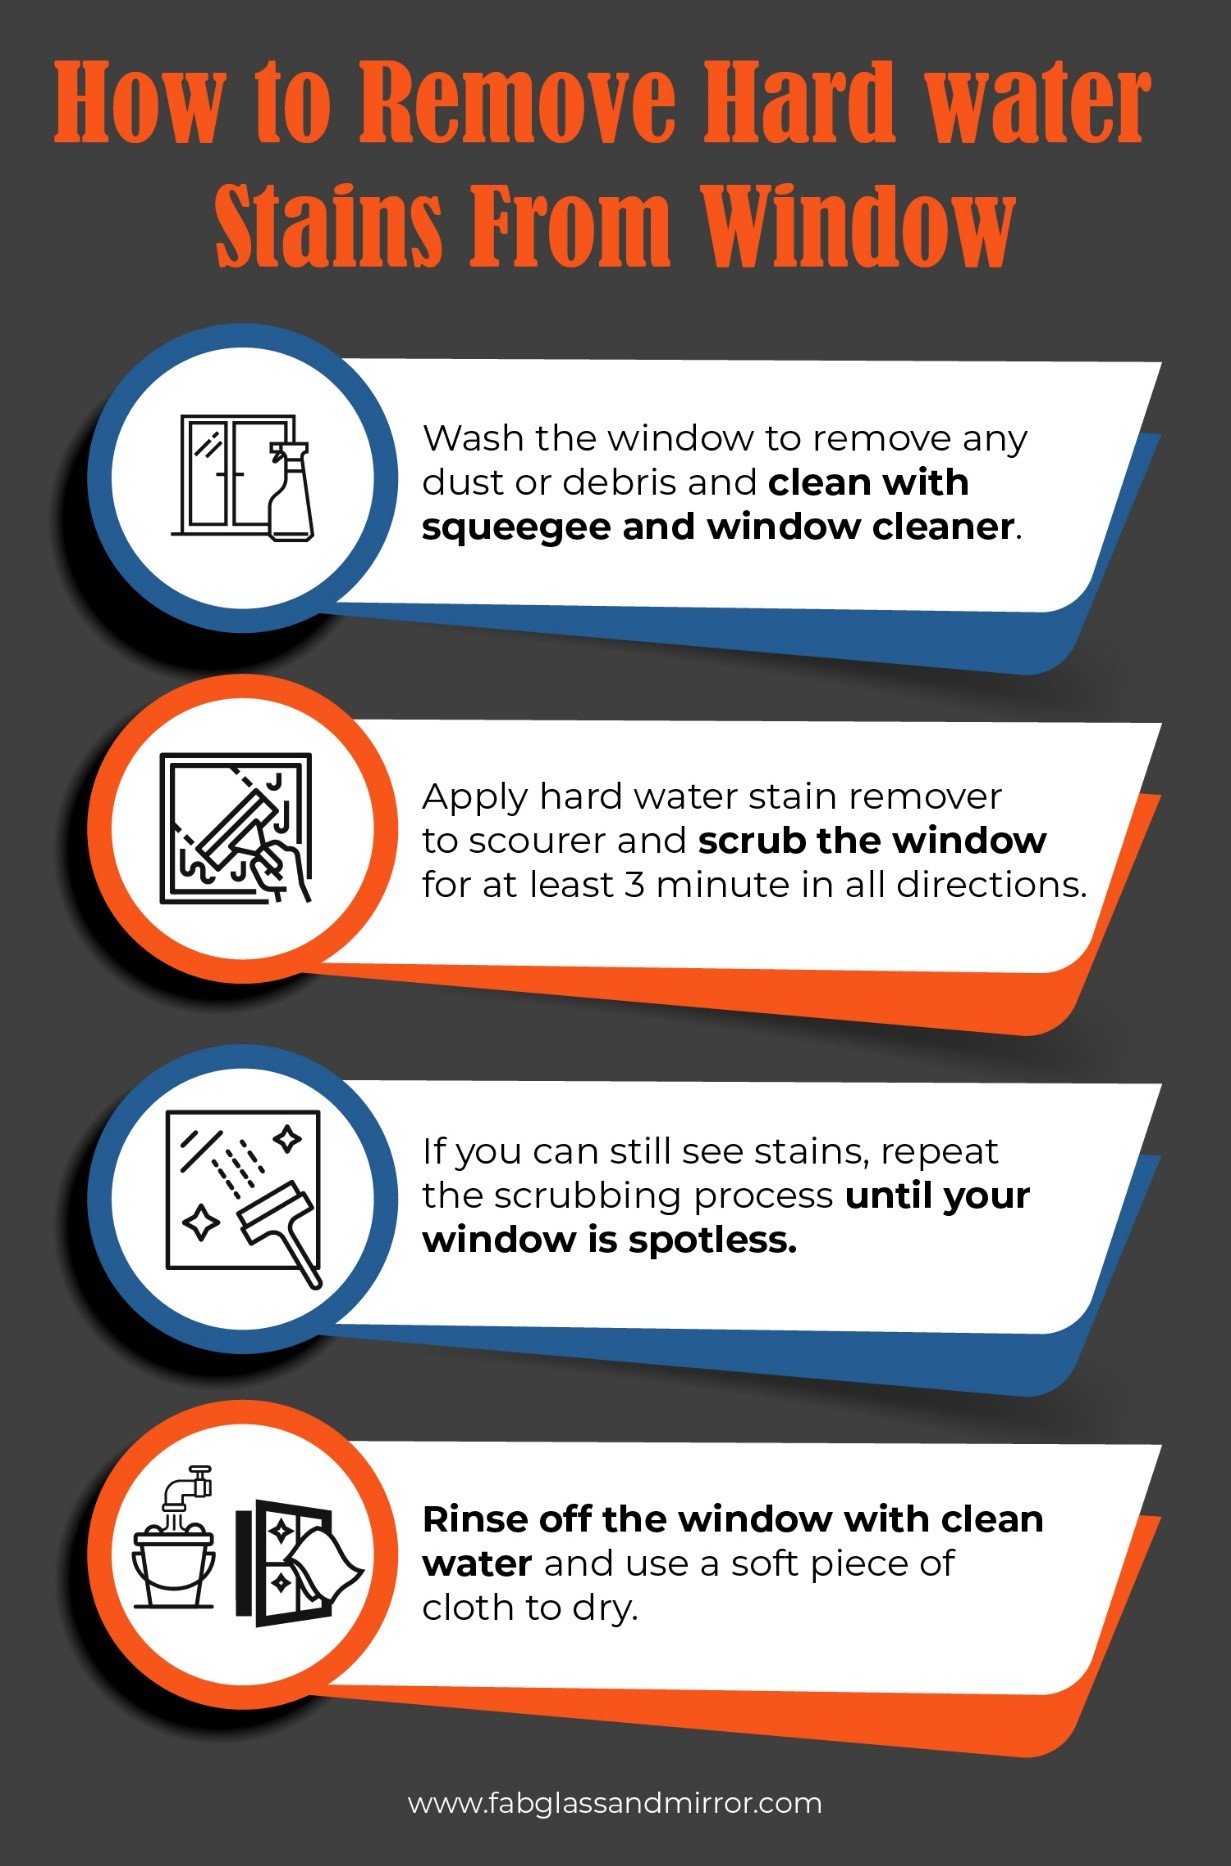 infographic - How to Remove Hard Water Stains from Windows